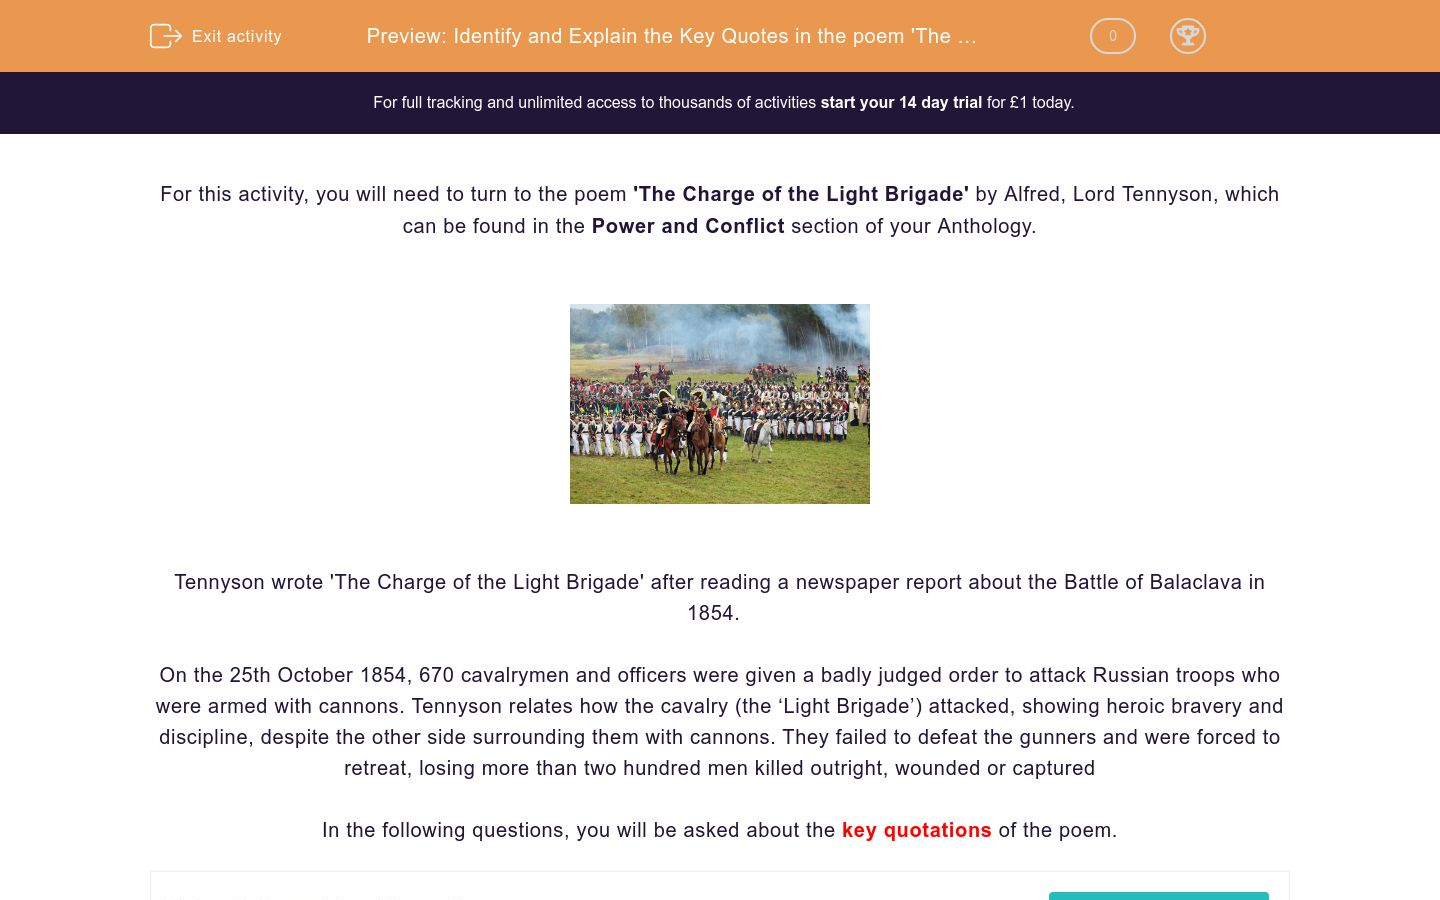 'Identify and Explain the Key Quotes in the poem 'The Charge of the Light Brigade' by Alfred, Lord Tennyson' worksheet